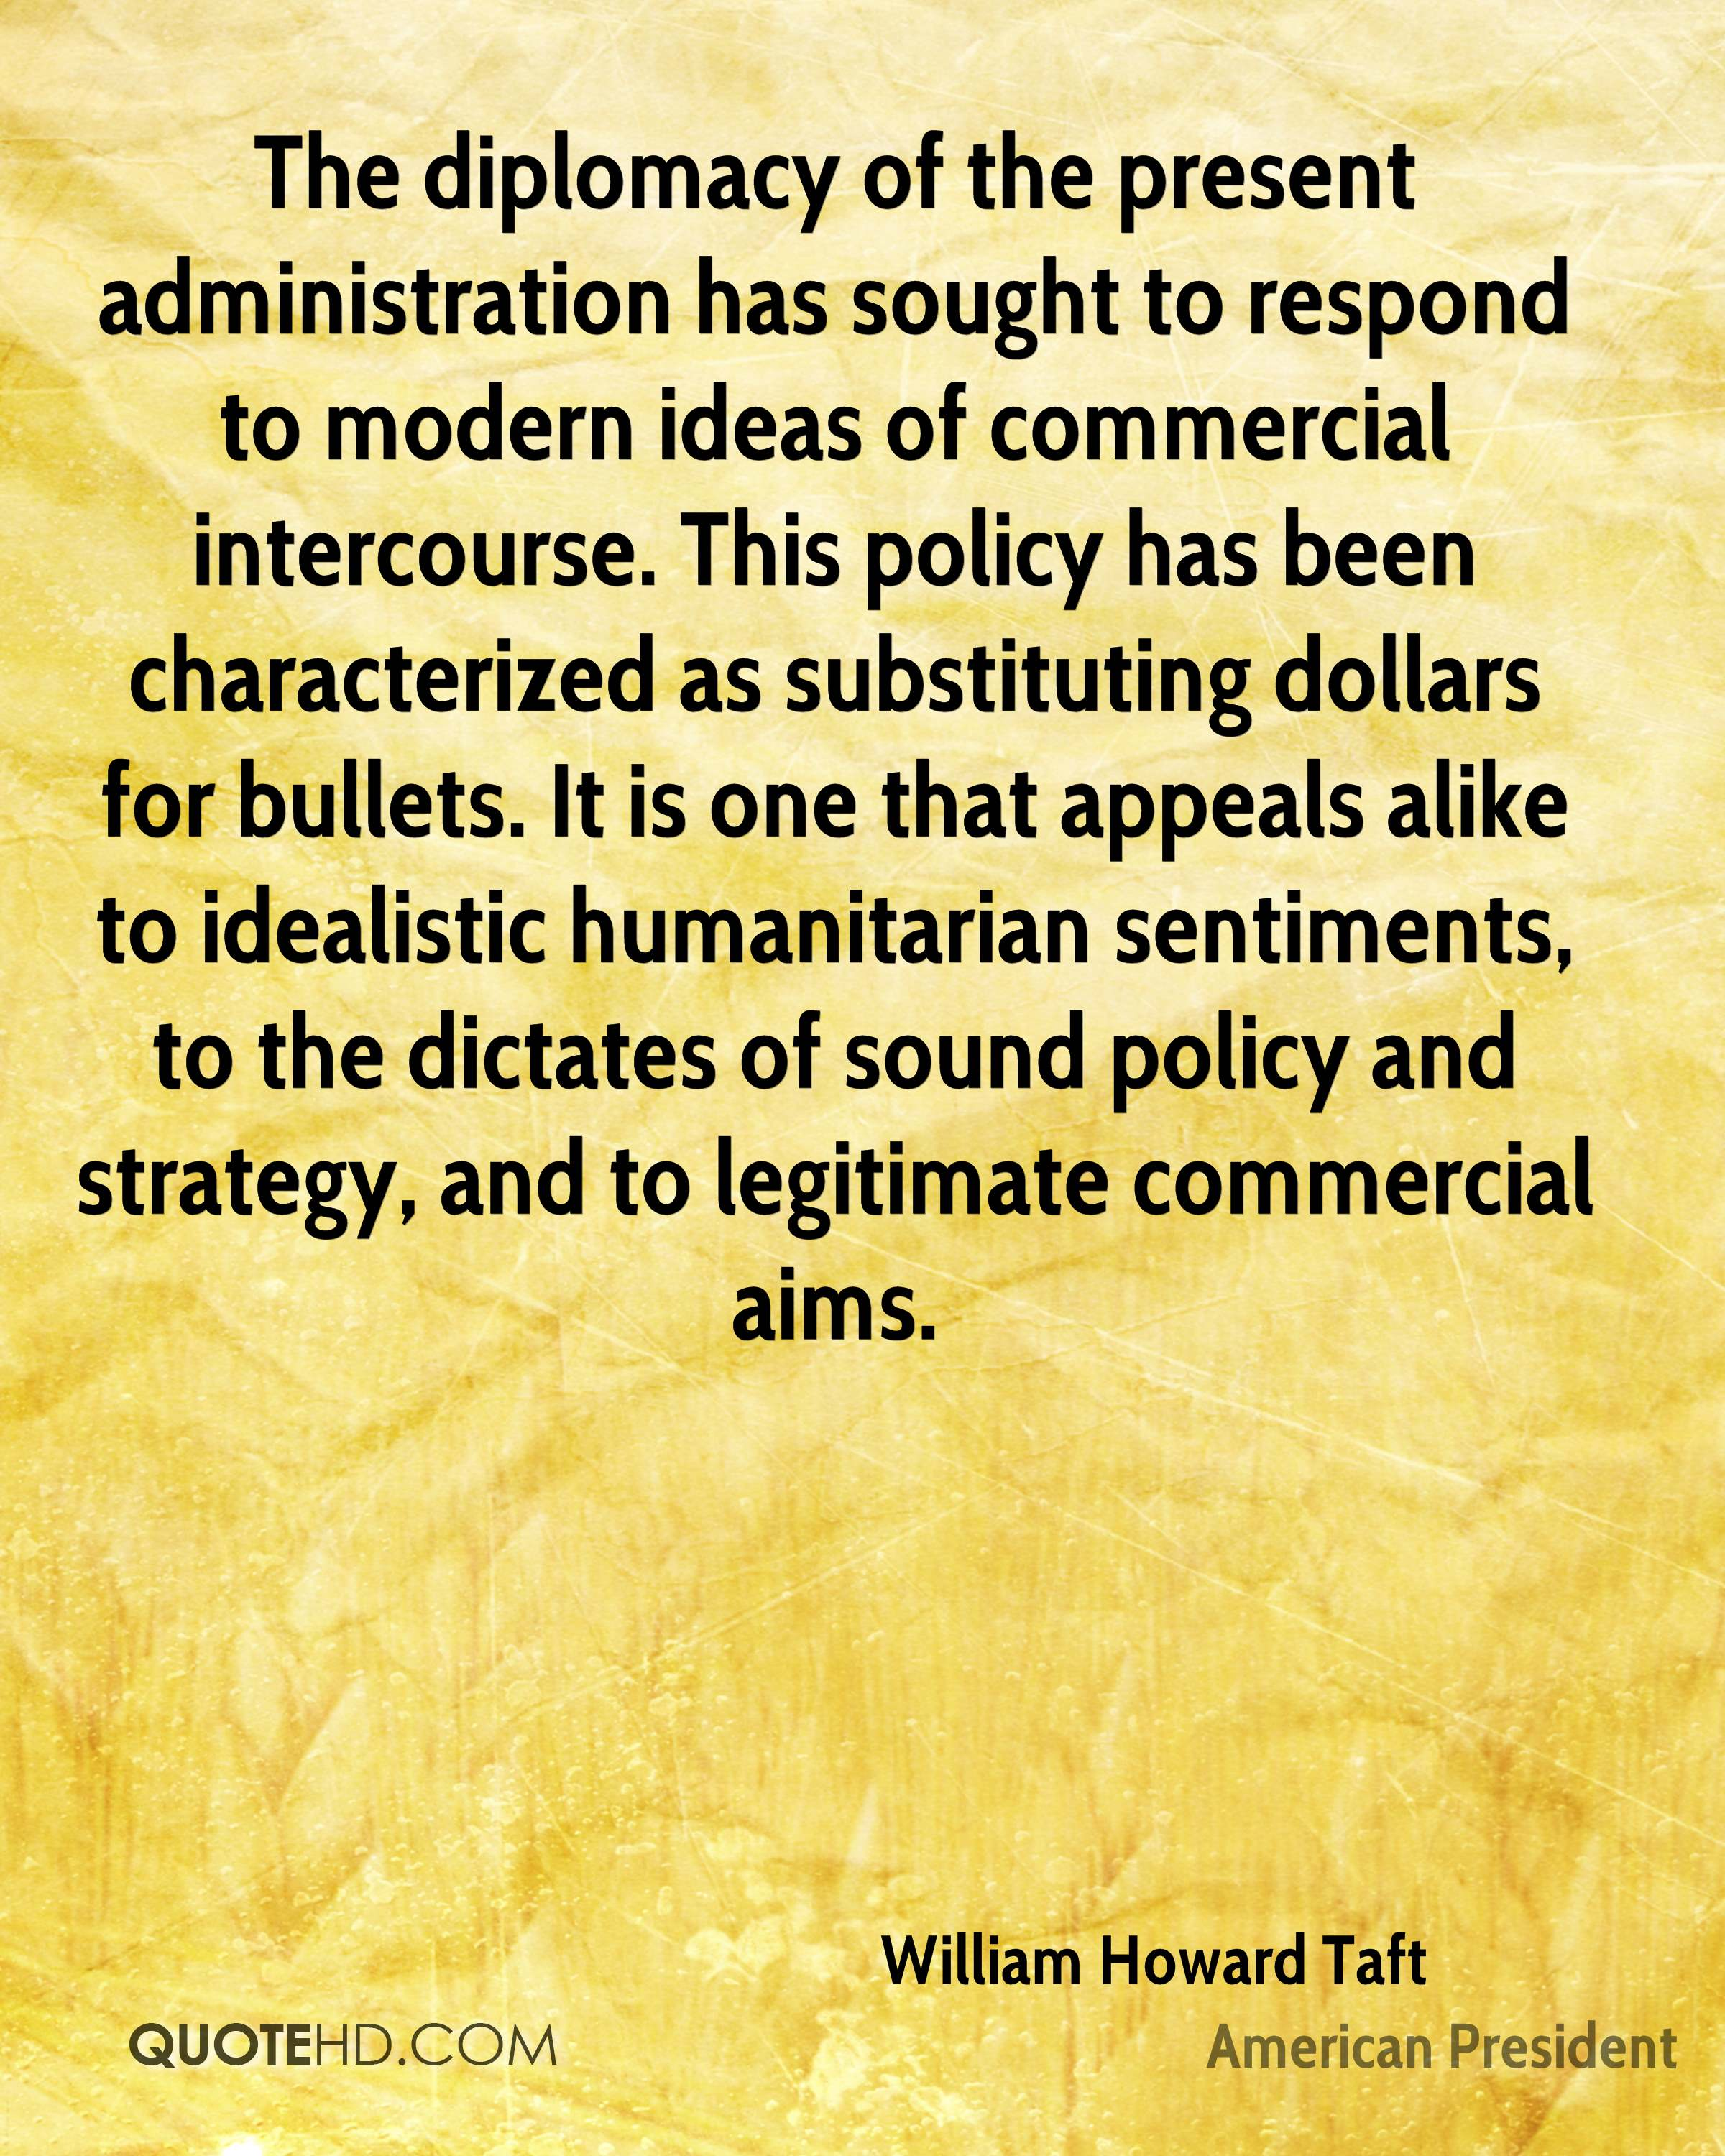 The diplomacy of the present administration has sought to respond to modern ideas of commercial intercourse. This policy has been characterized as substituting dollars for bullets. It is one that appeals alike to idealistic humanitarian sentiments, to the dictates of sound policy and strategy, and to legitimate commercial aims.